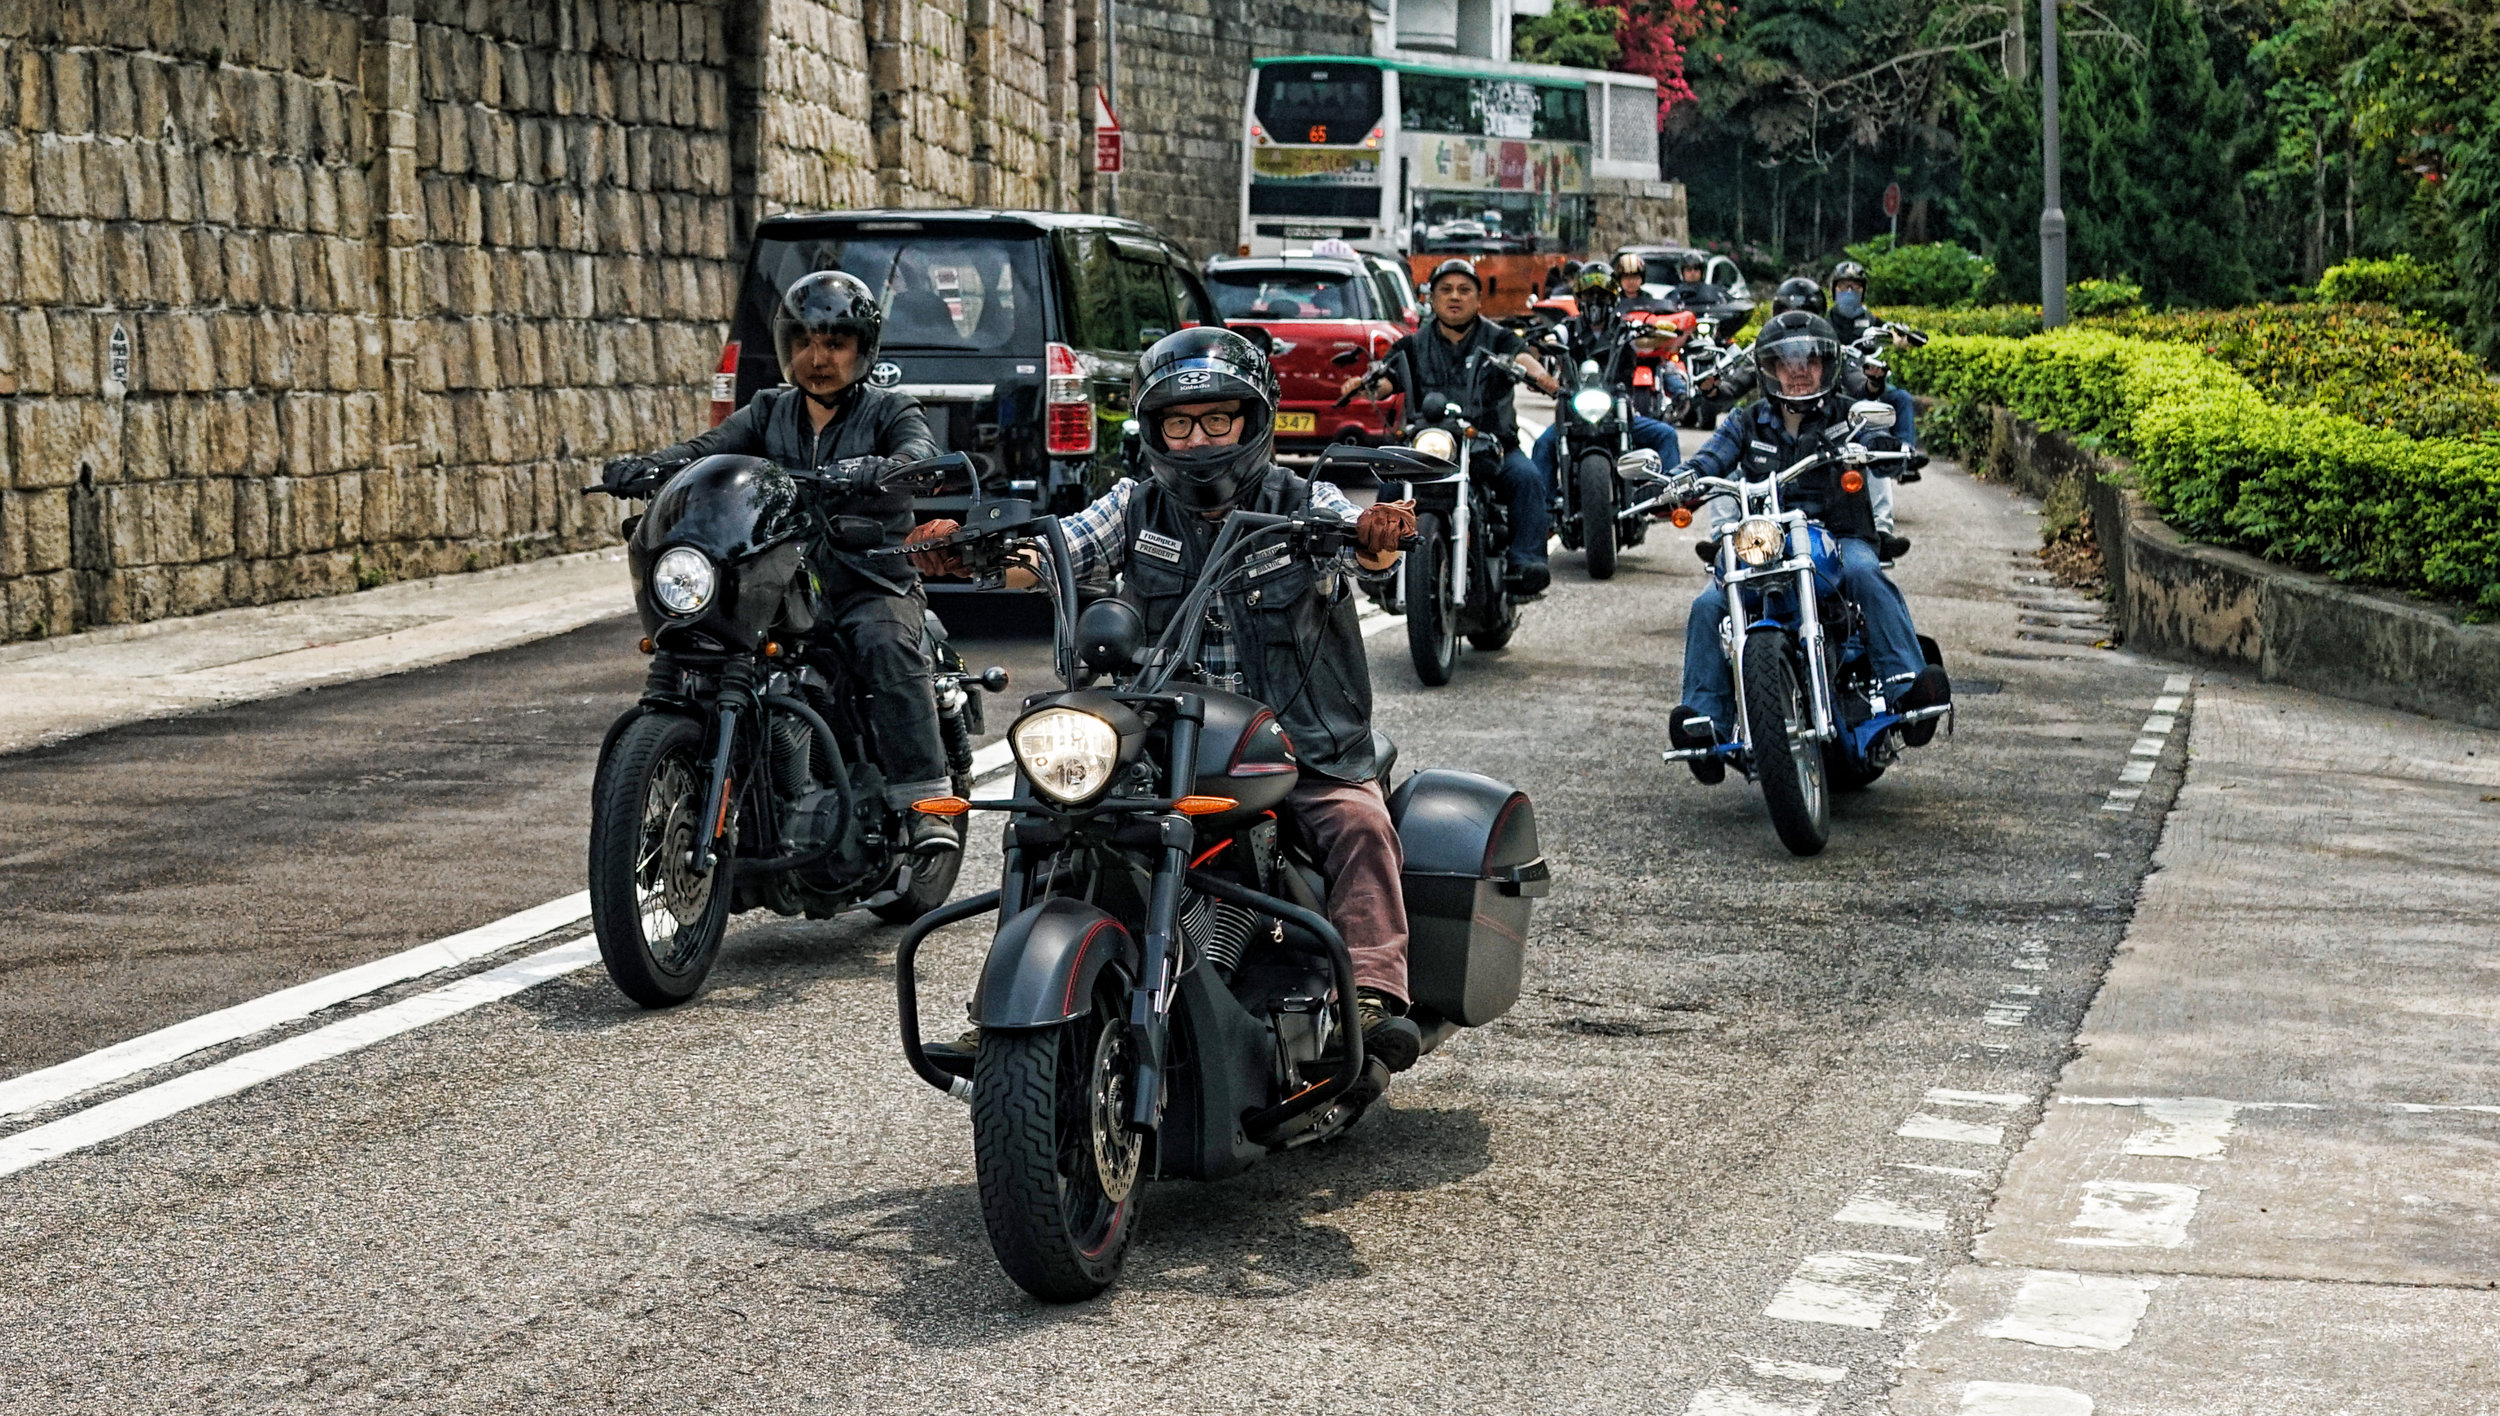 Hong Kong Airport Layover / Transit Tours -  The Harley mob! yes we have Harley clubs here in Hong Kong and sometimes you can see 30 of these iconic bikes trundling and rumbling along our beach roads on a weekend, awesome!